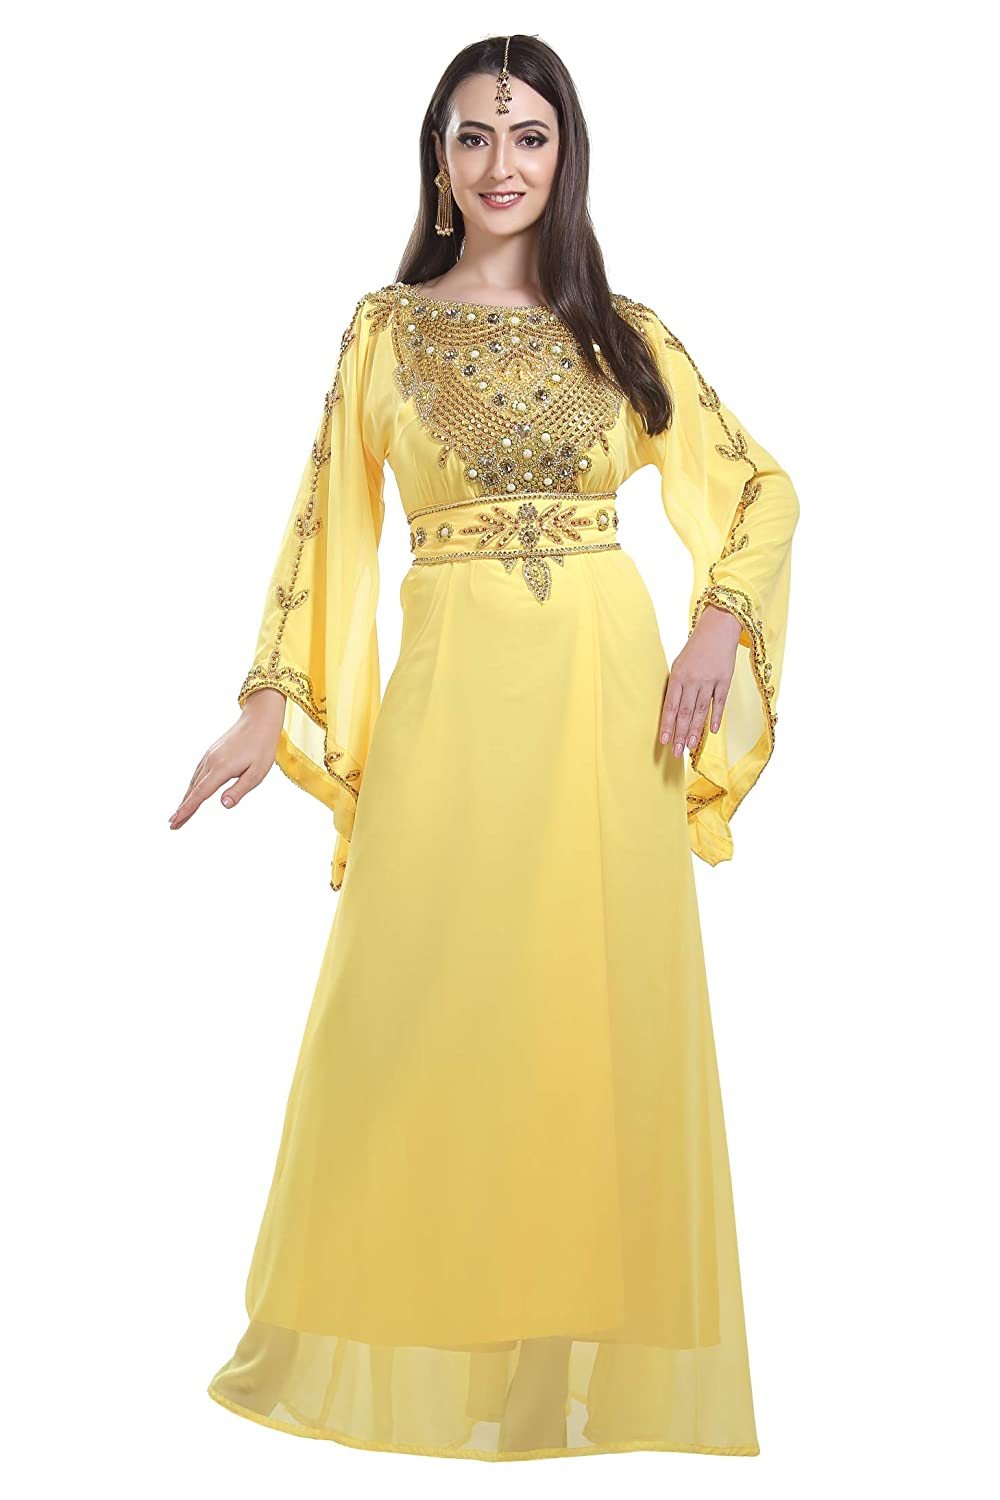 e5c4c9fadc57 Evening Wear Home Gown Nighty Caftan Dress Full Length Maxi for Ladies 7199  at Amazon Women s Clothing store